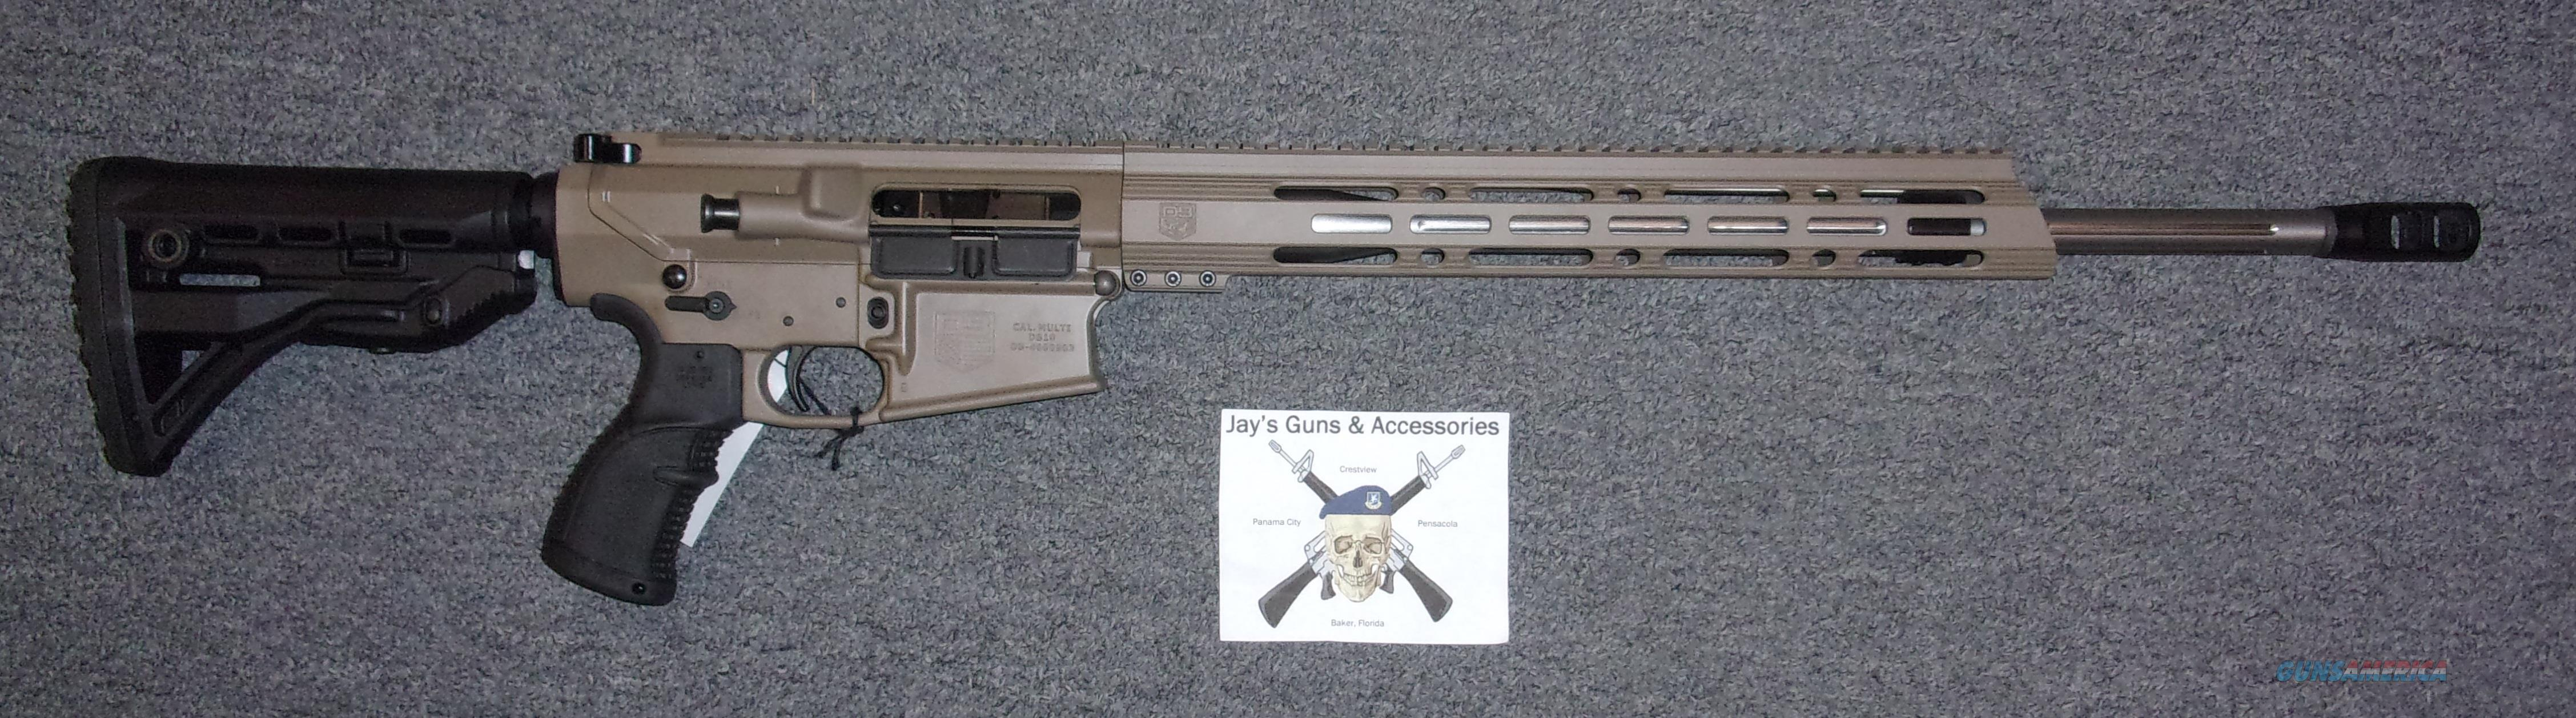 Diamondback DB-10 w/FDE Finish  Guns > Rifles > Diamondback Rifles